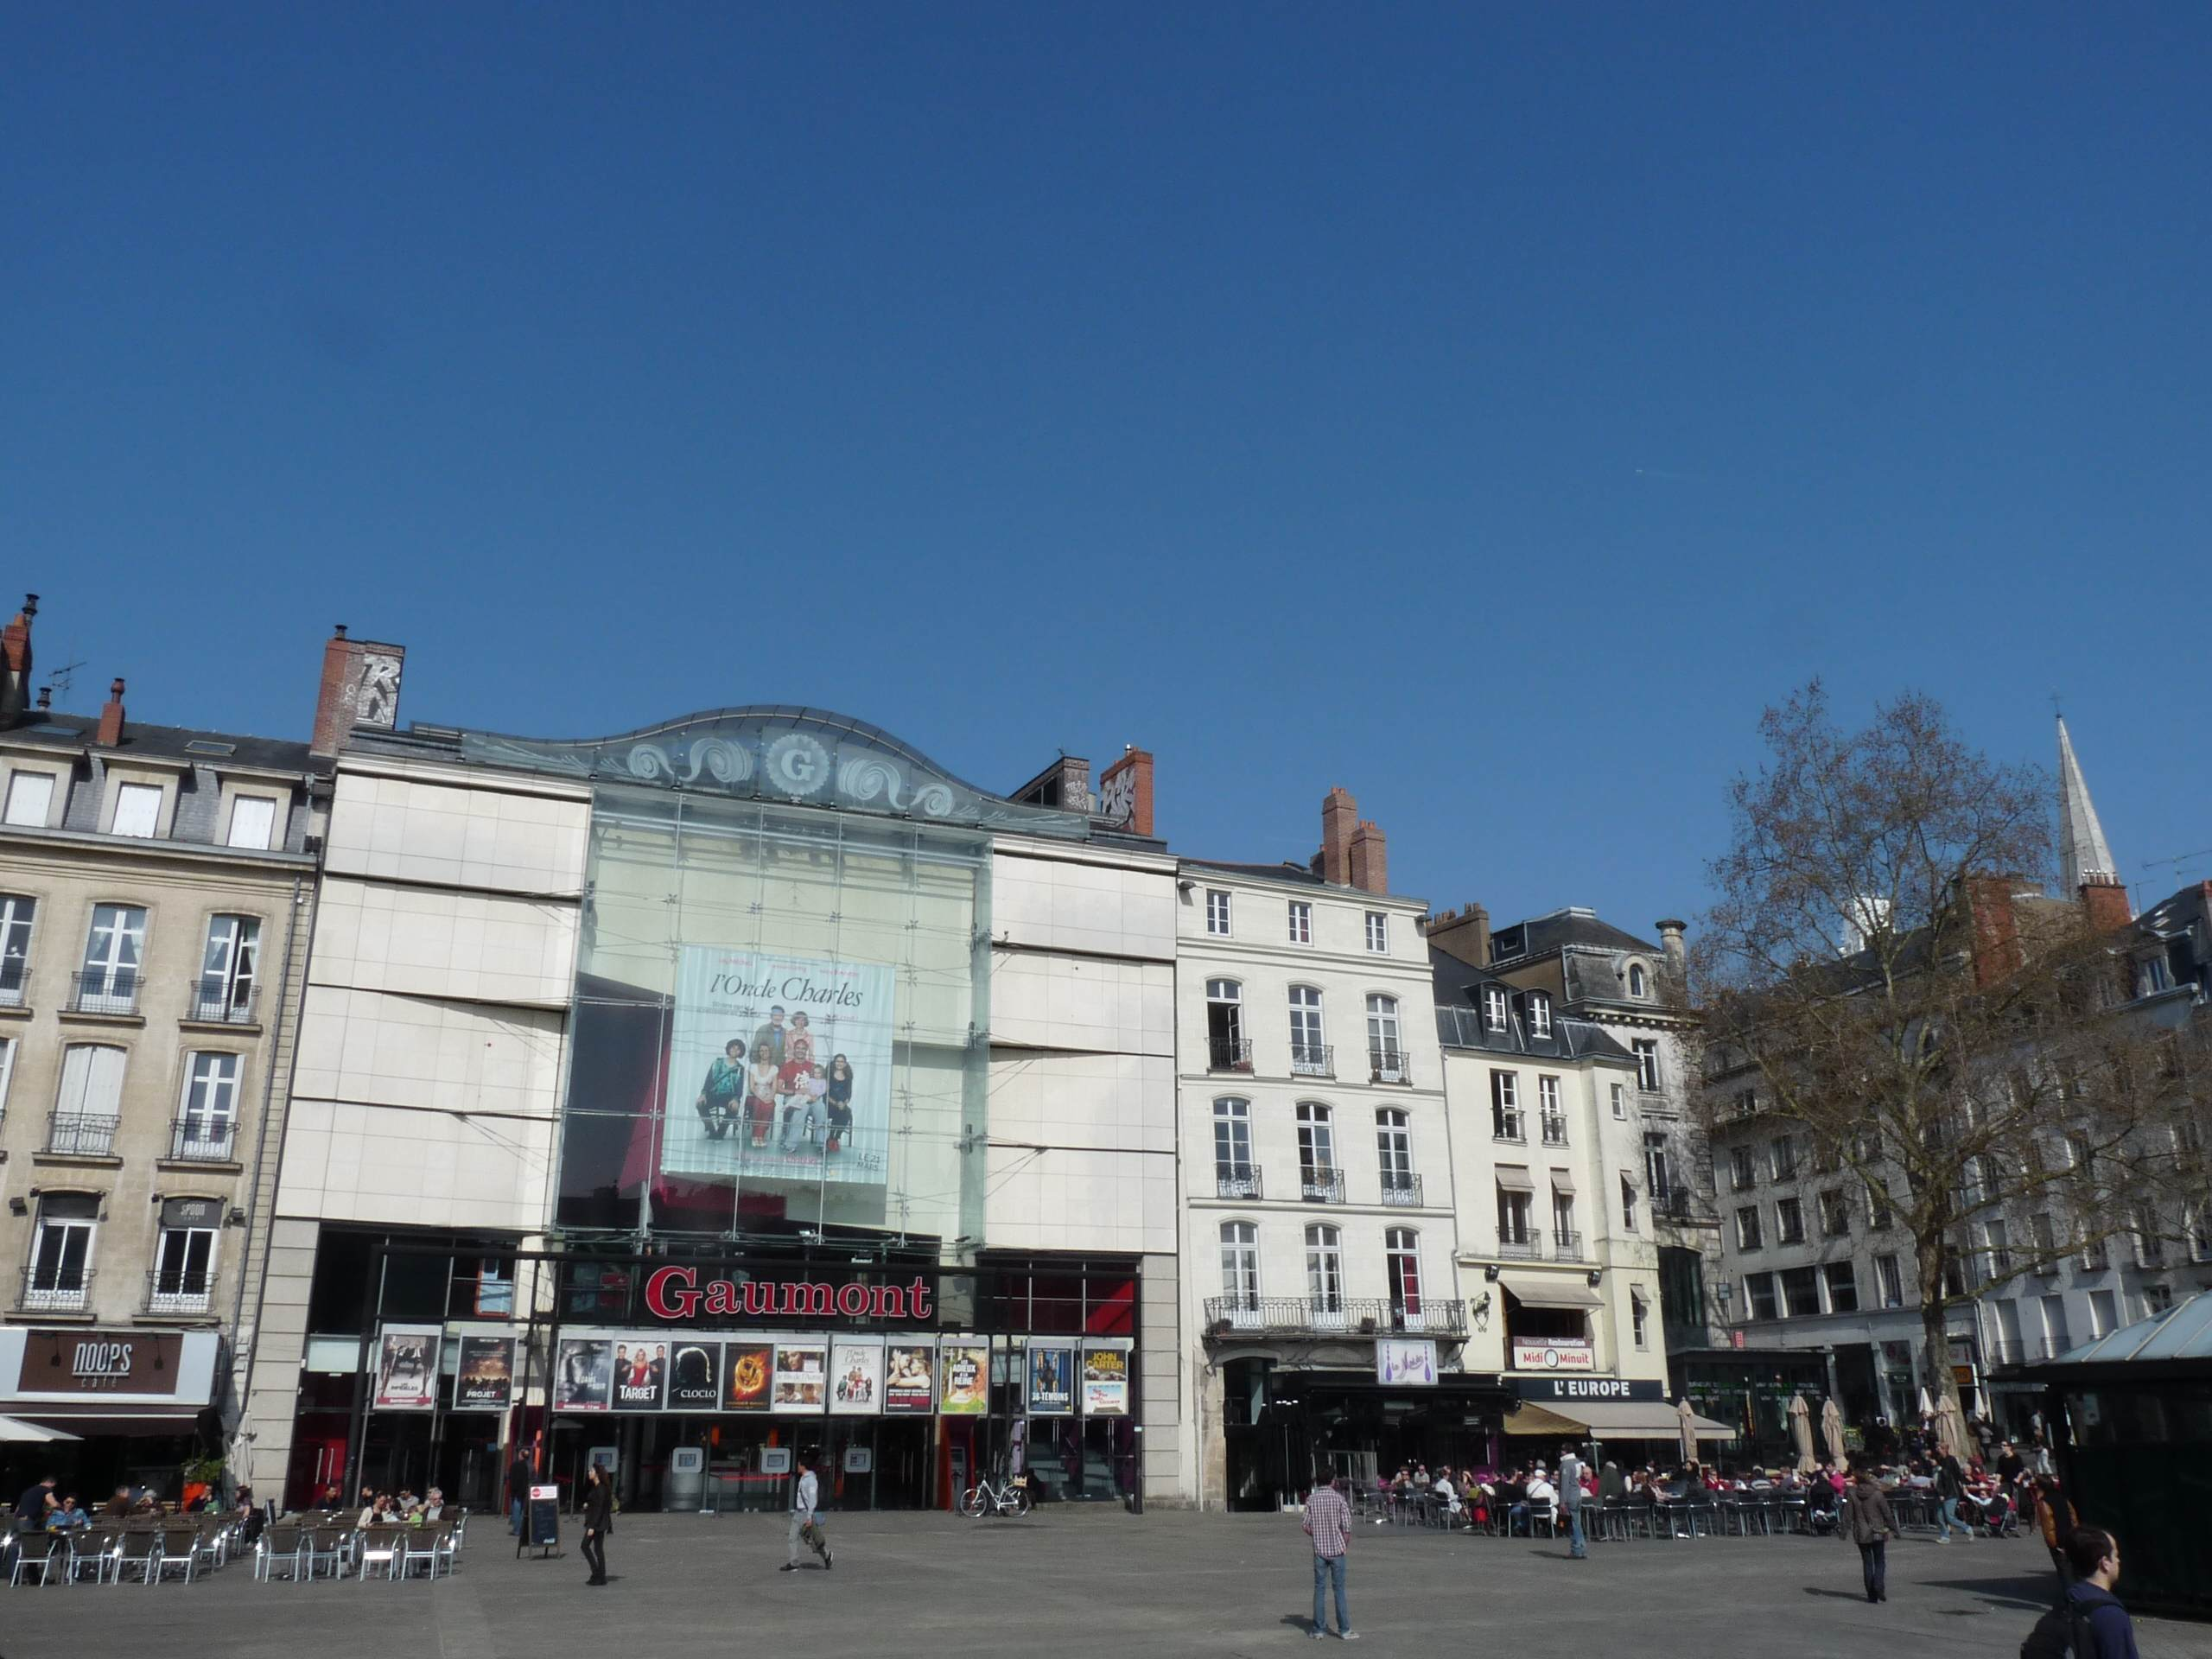 Magasin Deco Nantes Centre Ville Magasin Deco Nantes Centre Ville Faire Son Shopping